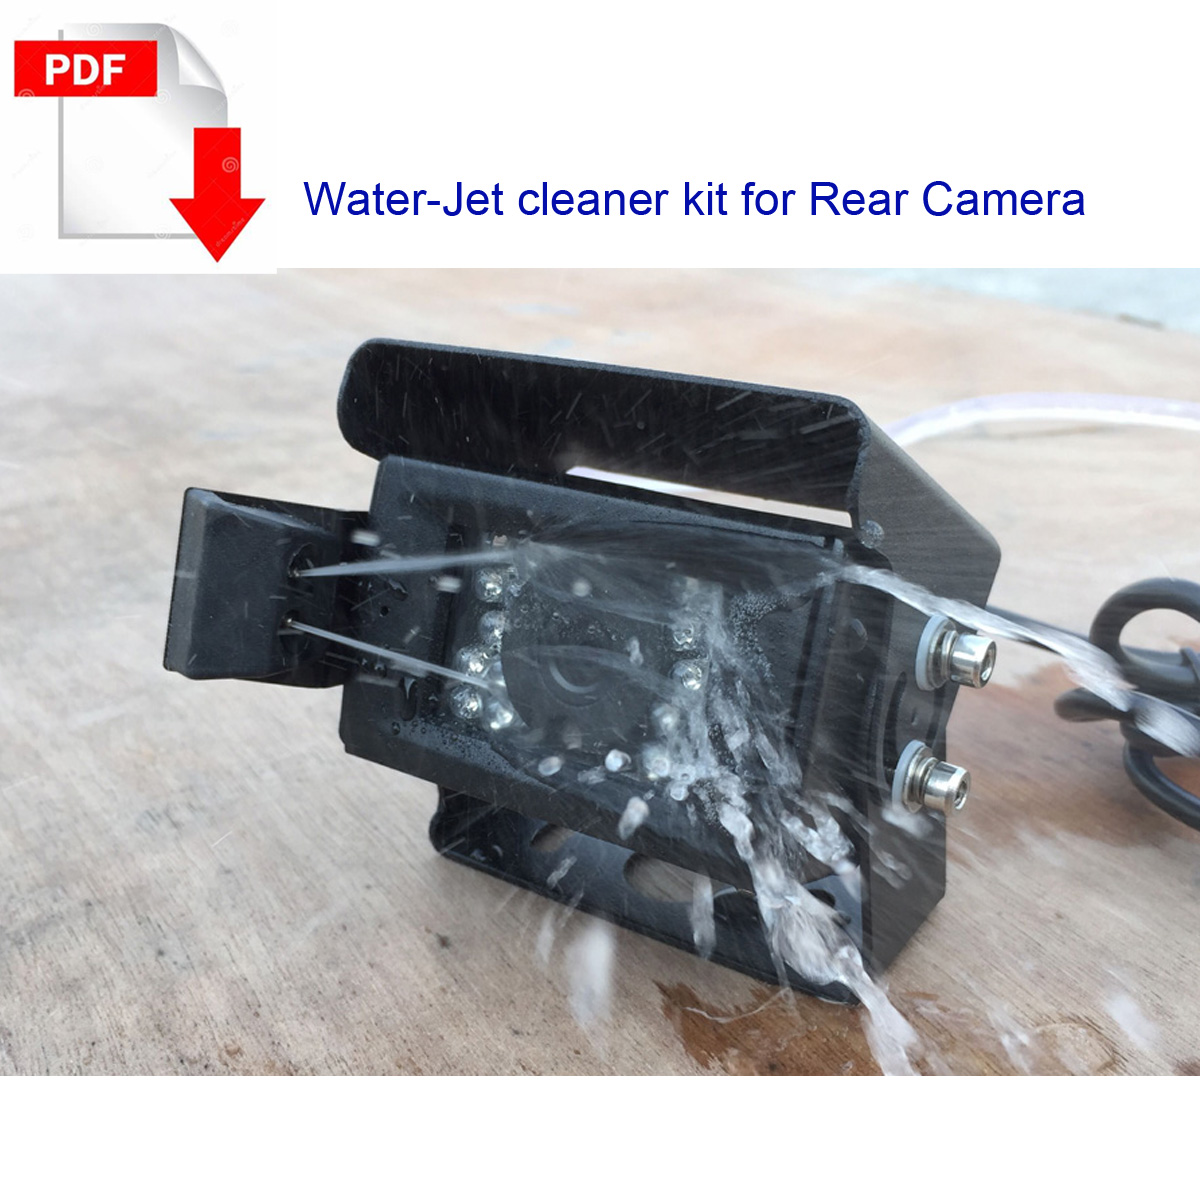 Rear view-camera-with water-jet cleaner system